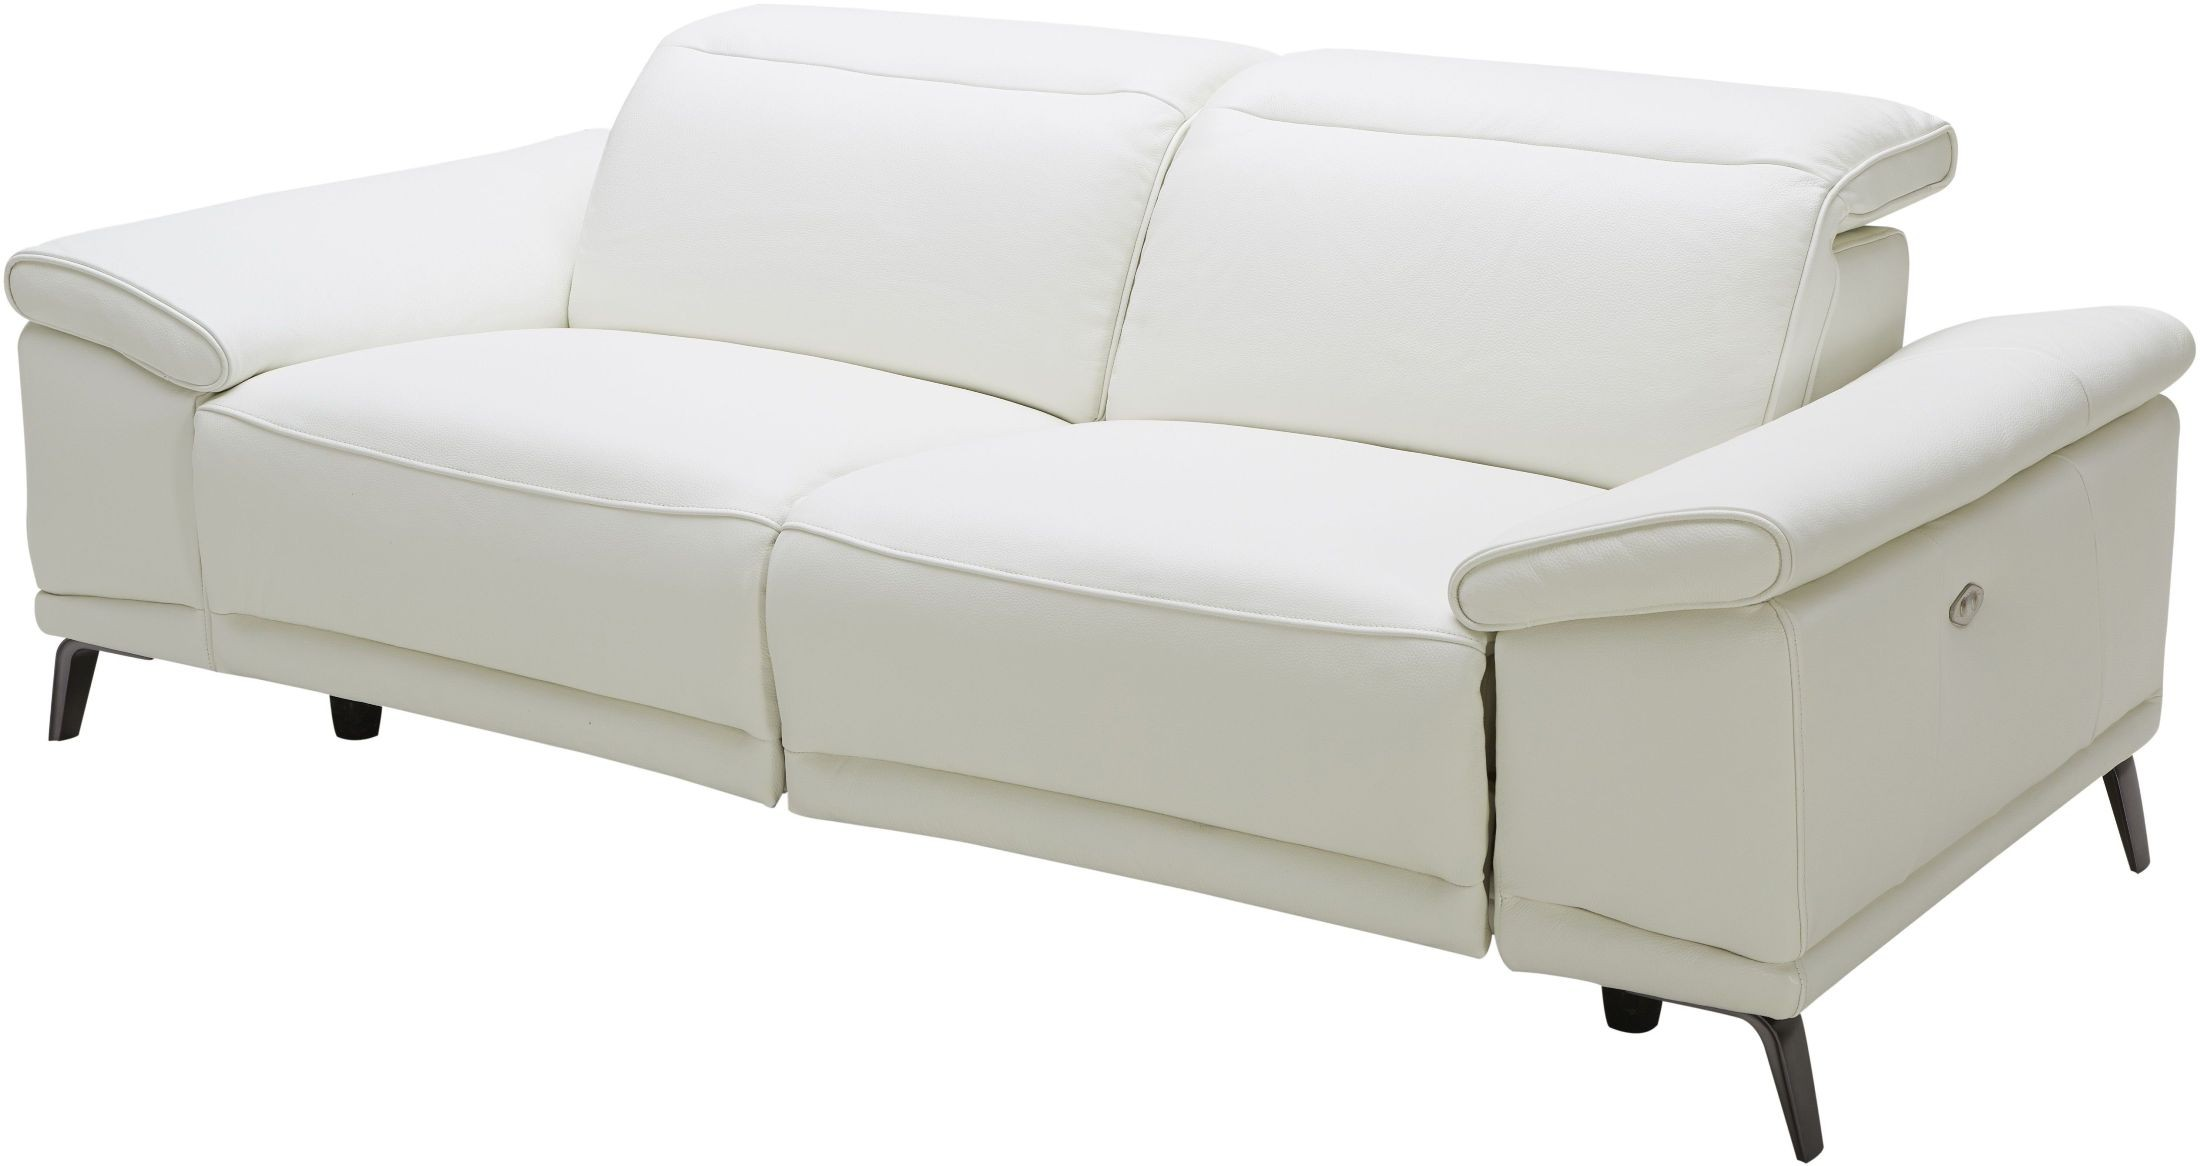 KMP Furniture has a variety of modern furniture such as bedroom furniture, patio furniture, sofas. Made in the USA Furniture.